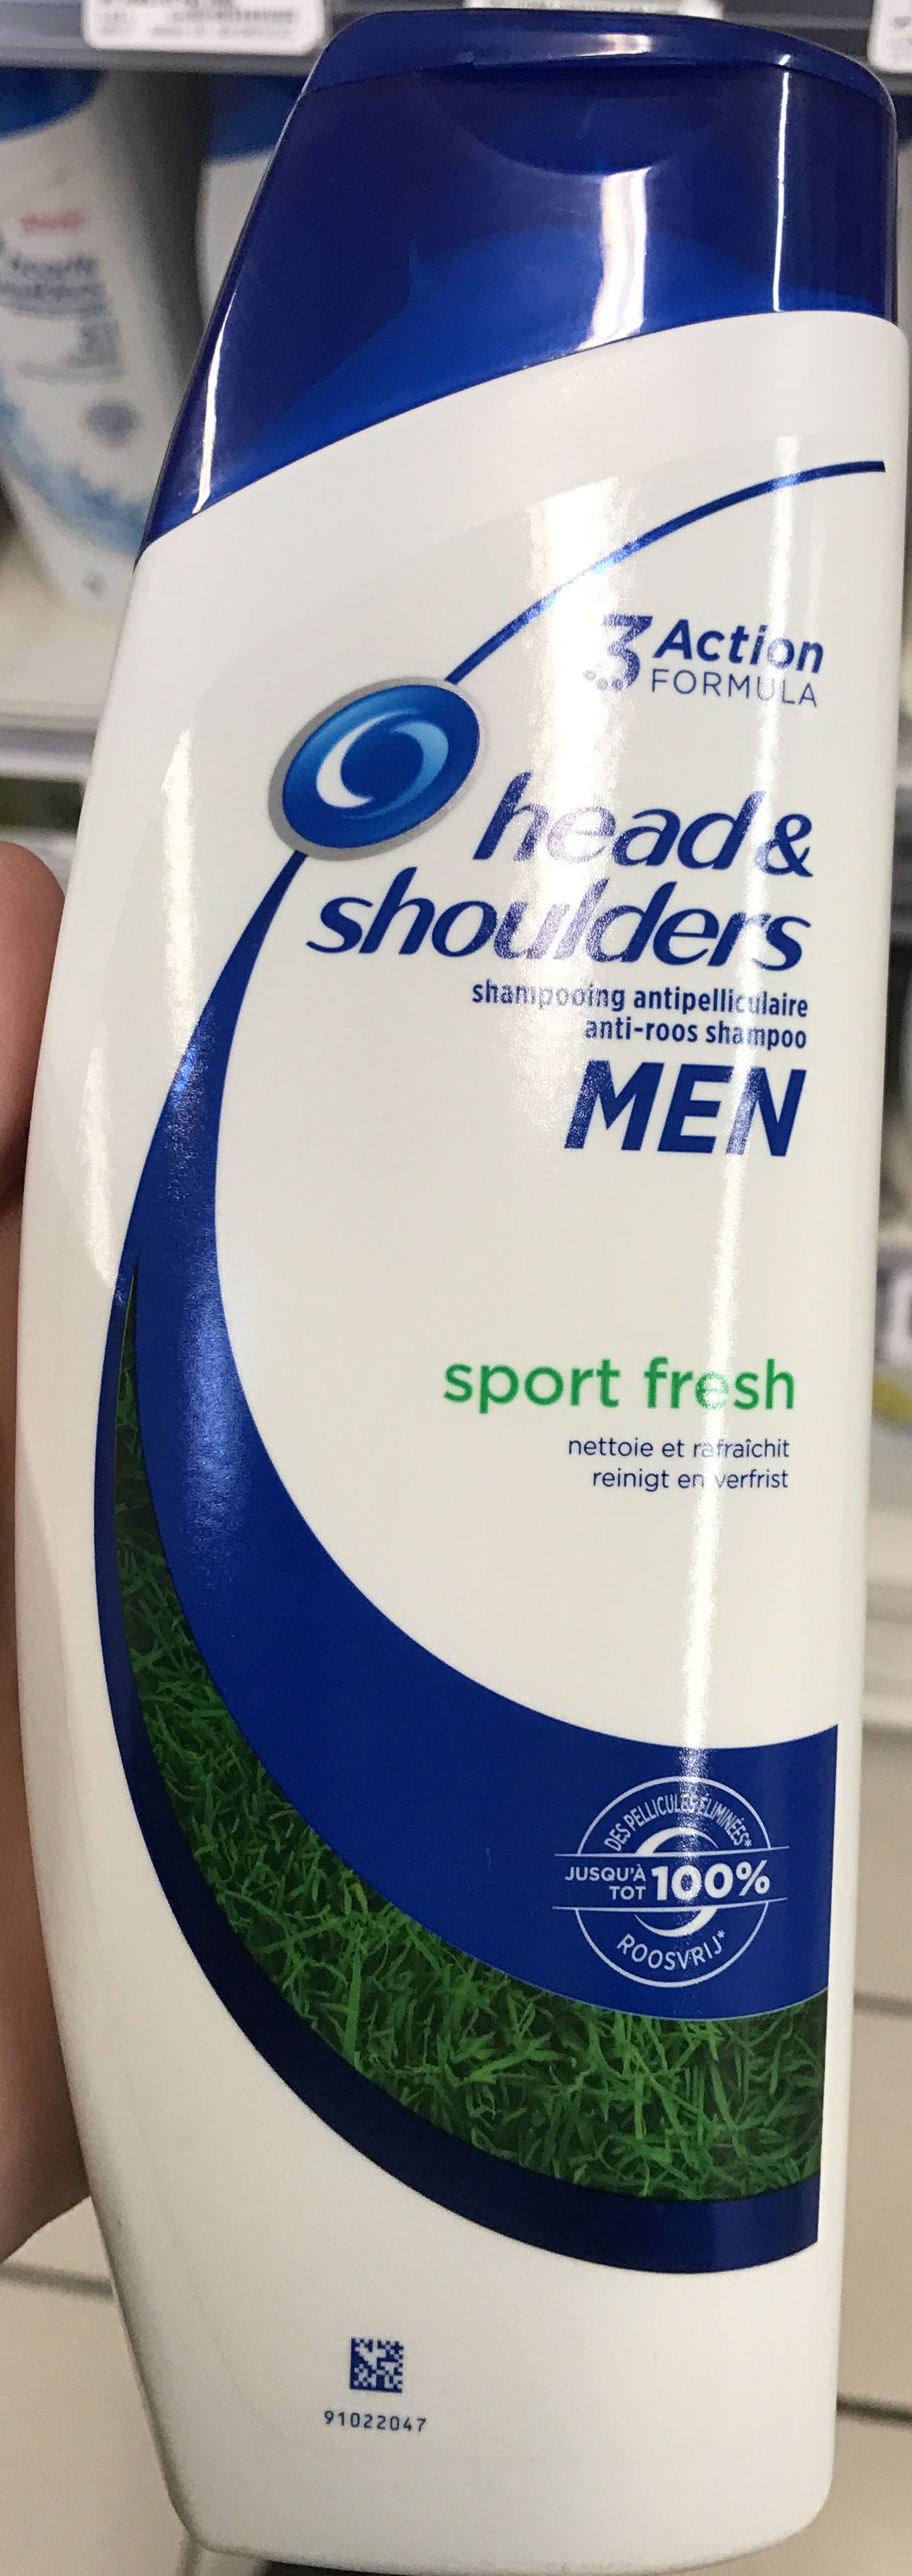 Men Sport Fresh - Product